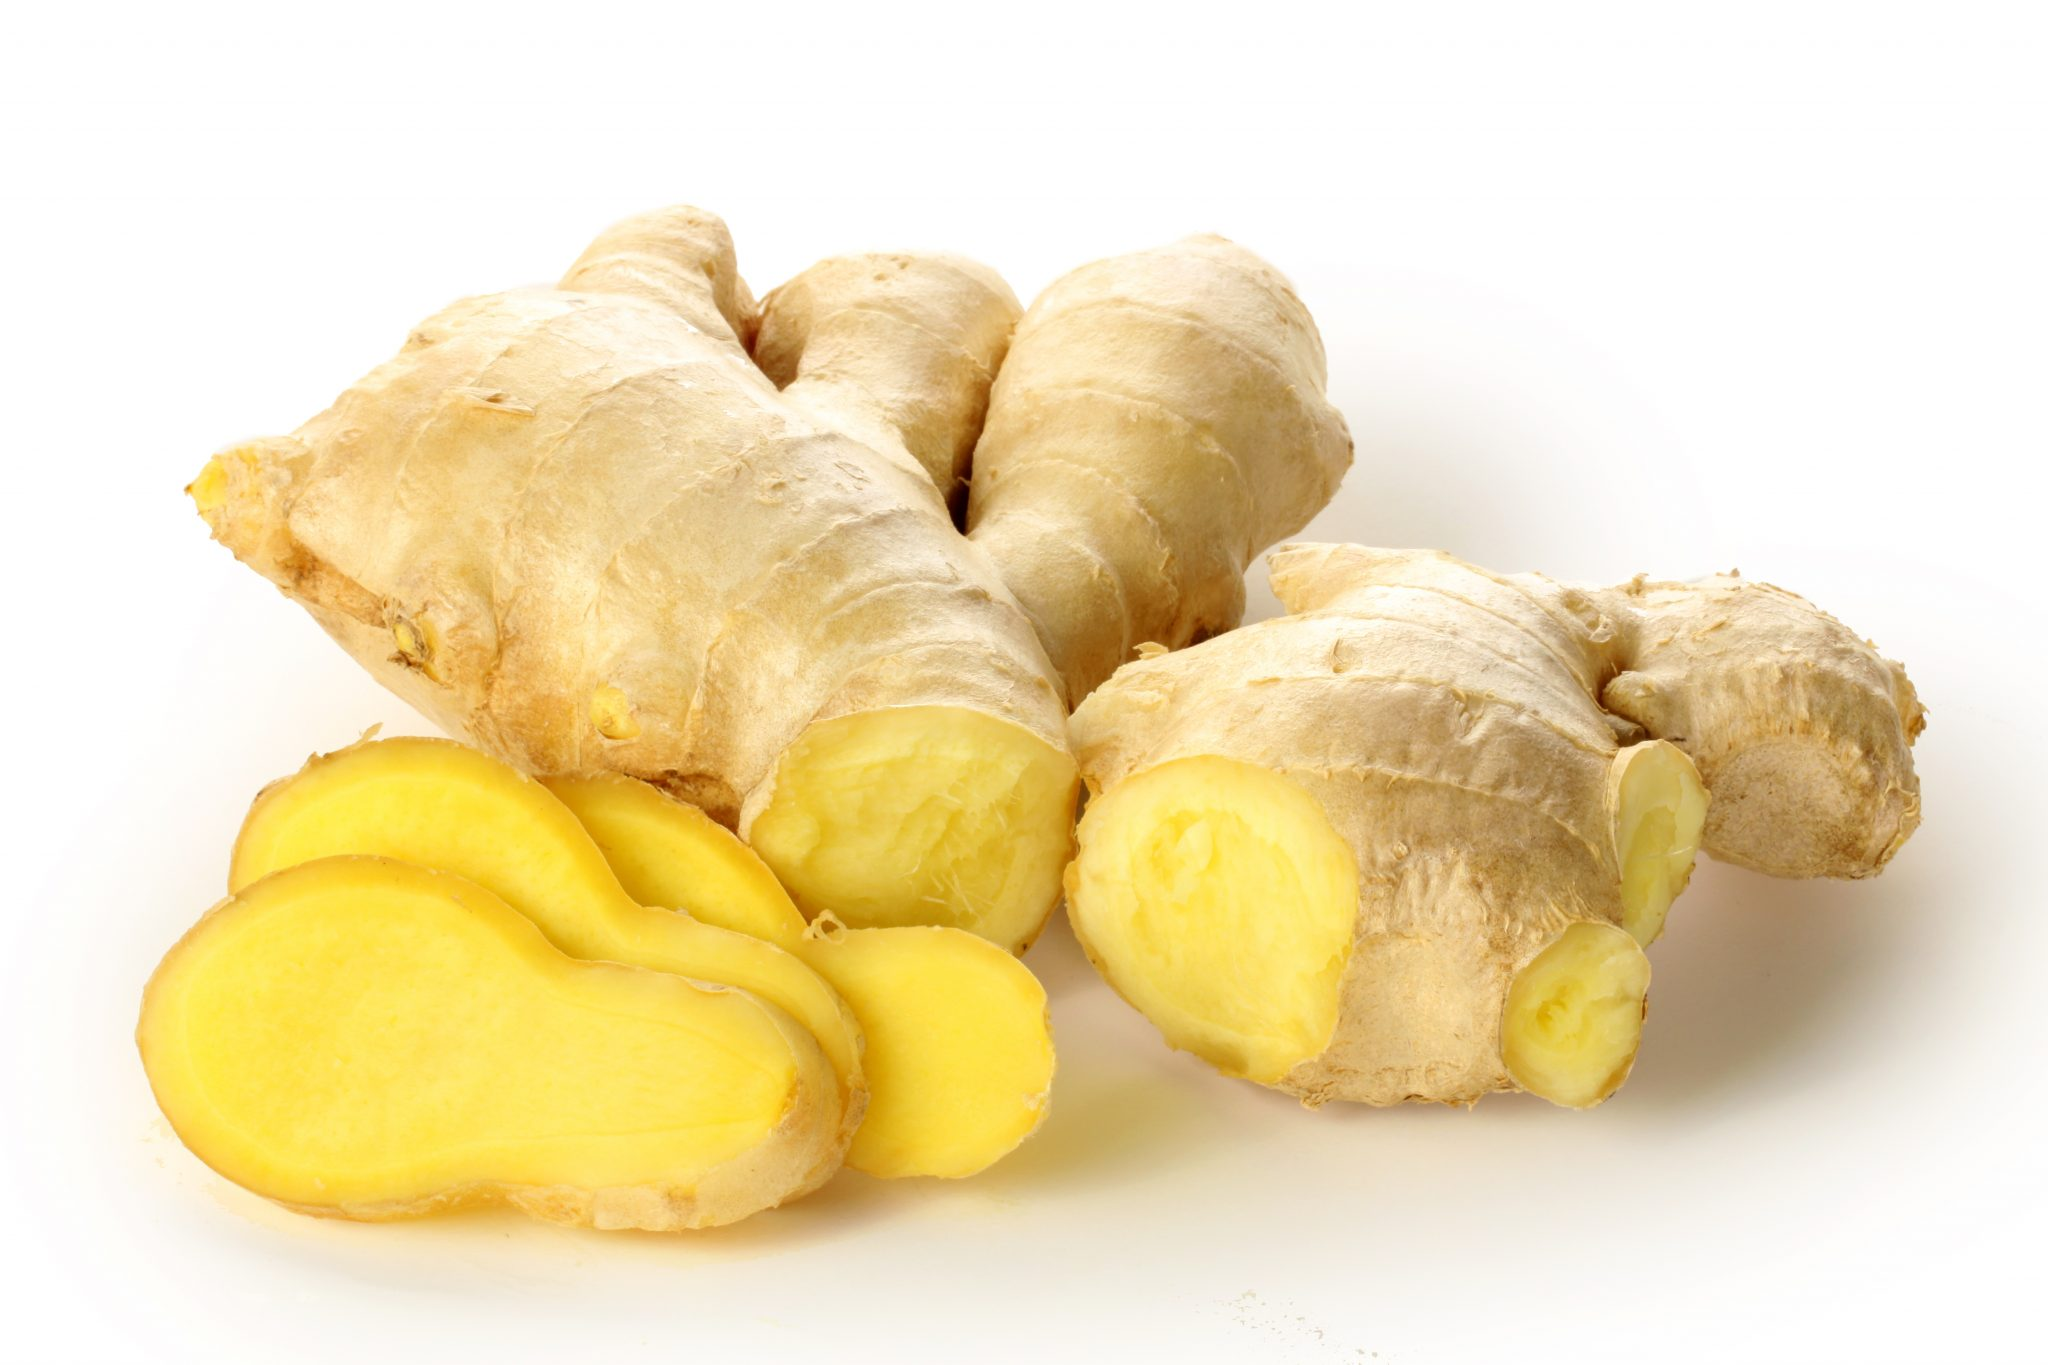 Use 50g of freshly sliced ginger for this simple herbal foot soak